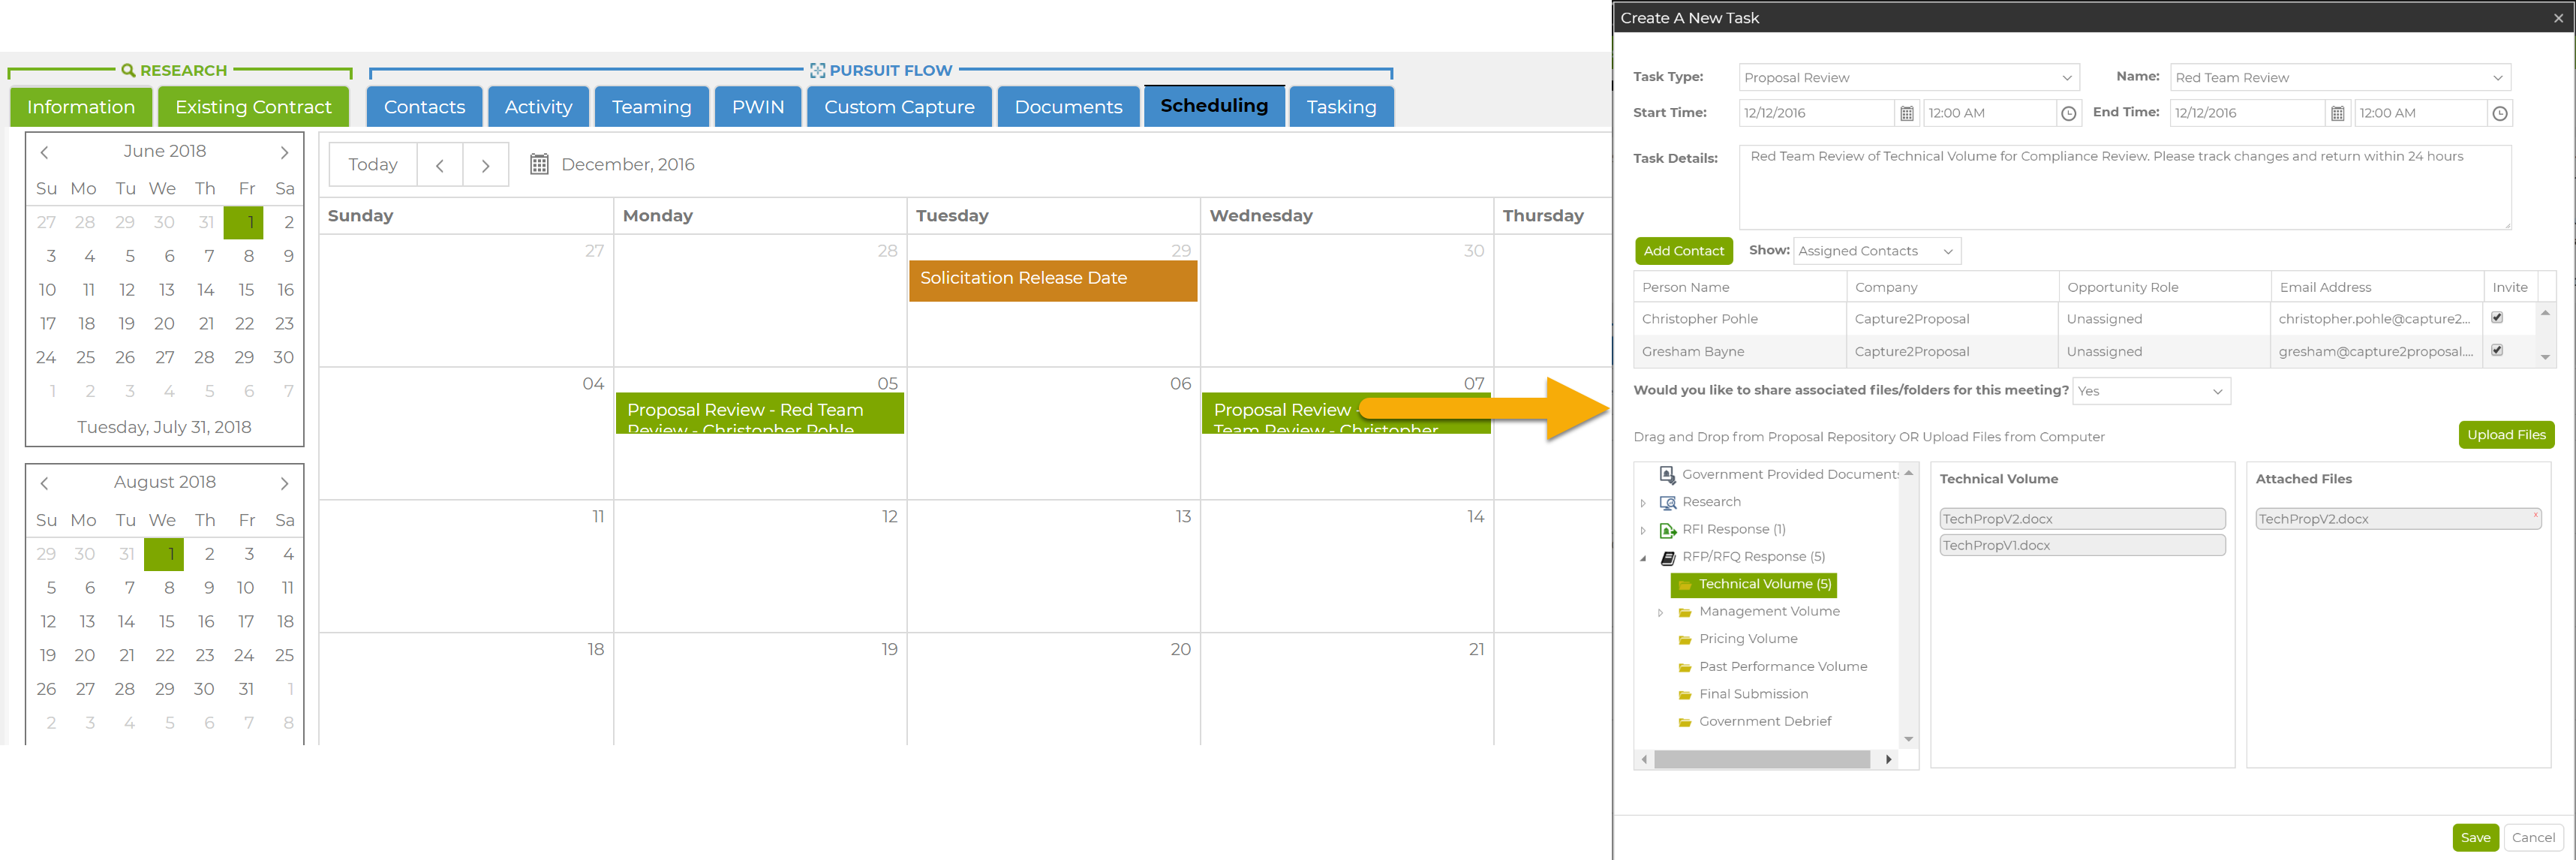 Creating a New Task in Capture2's Schedule Management Feature